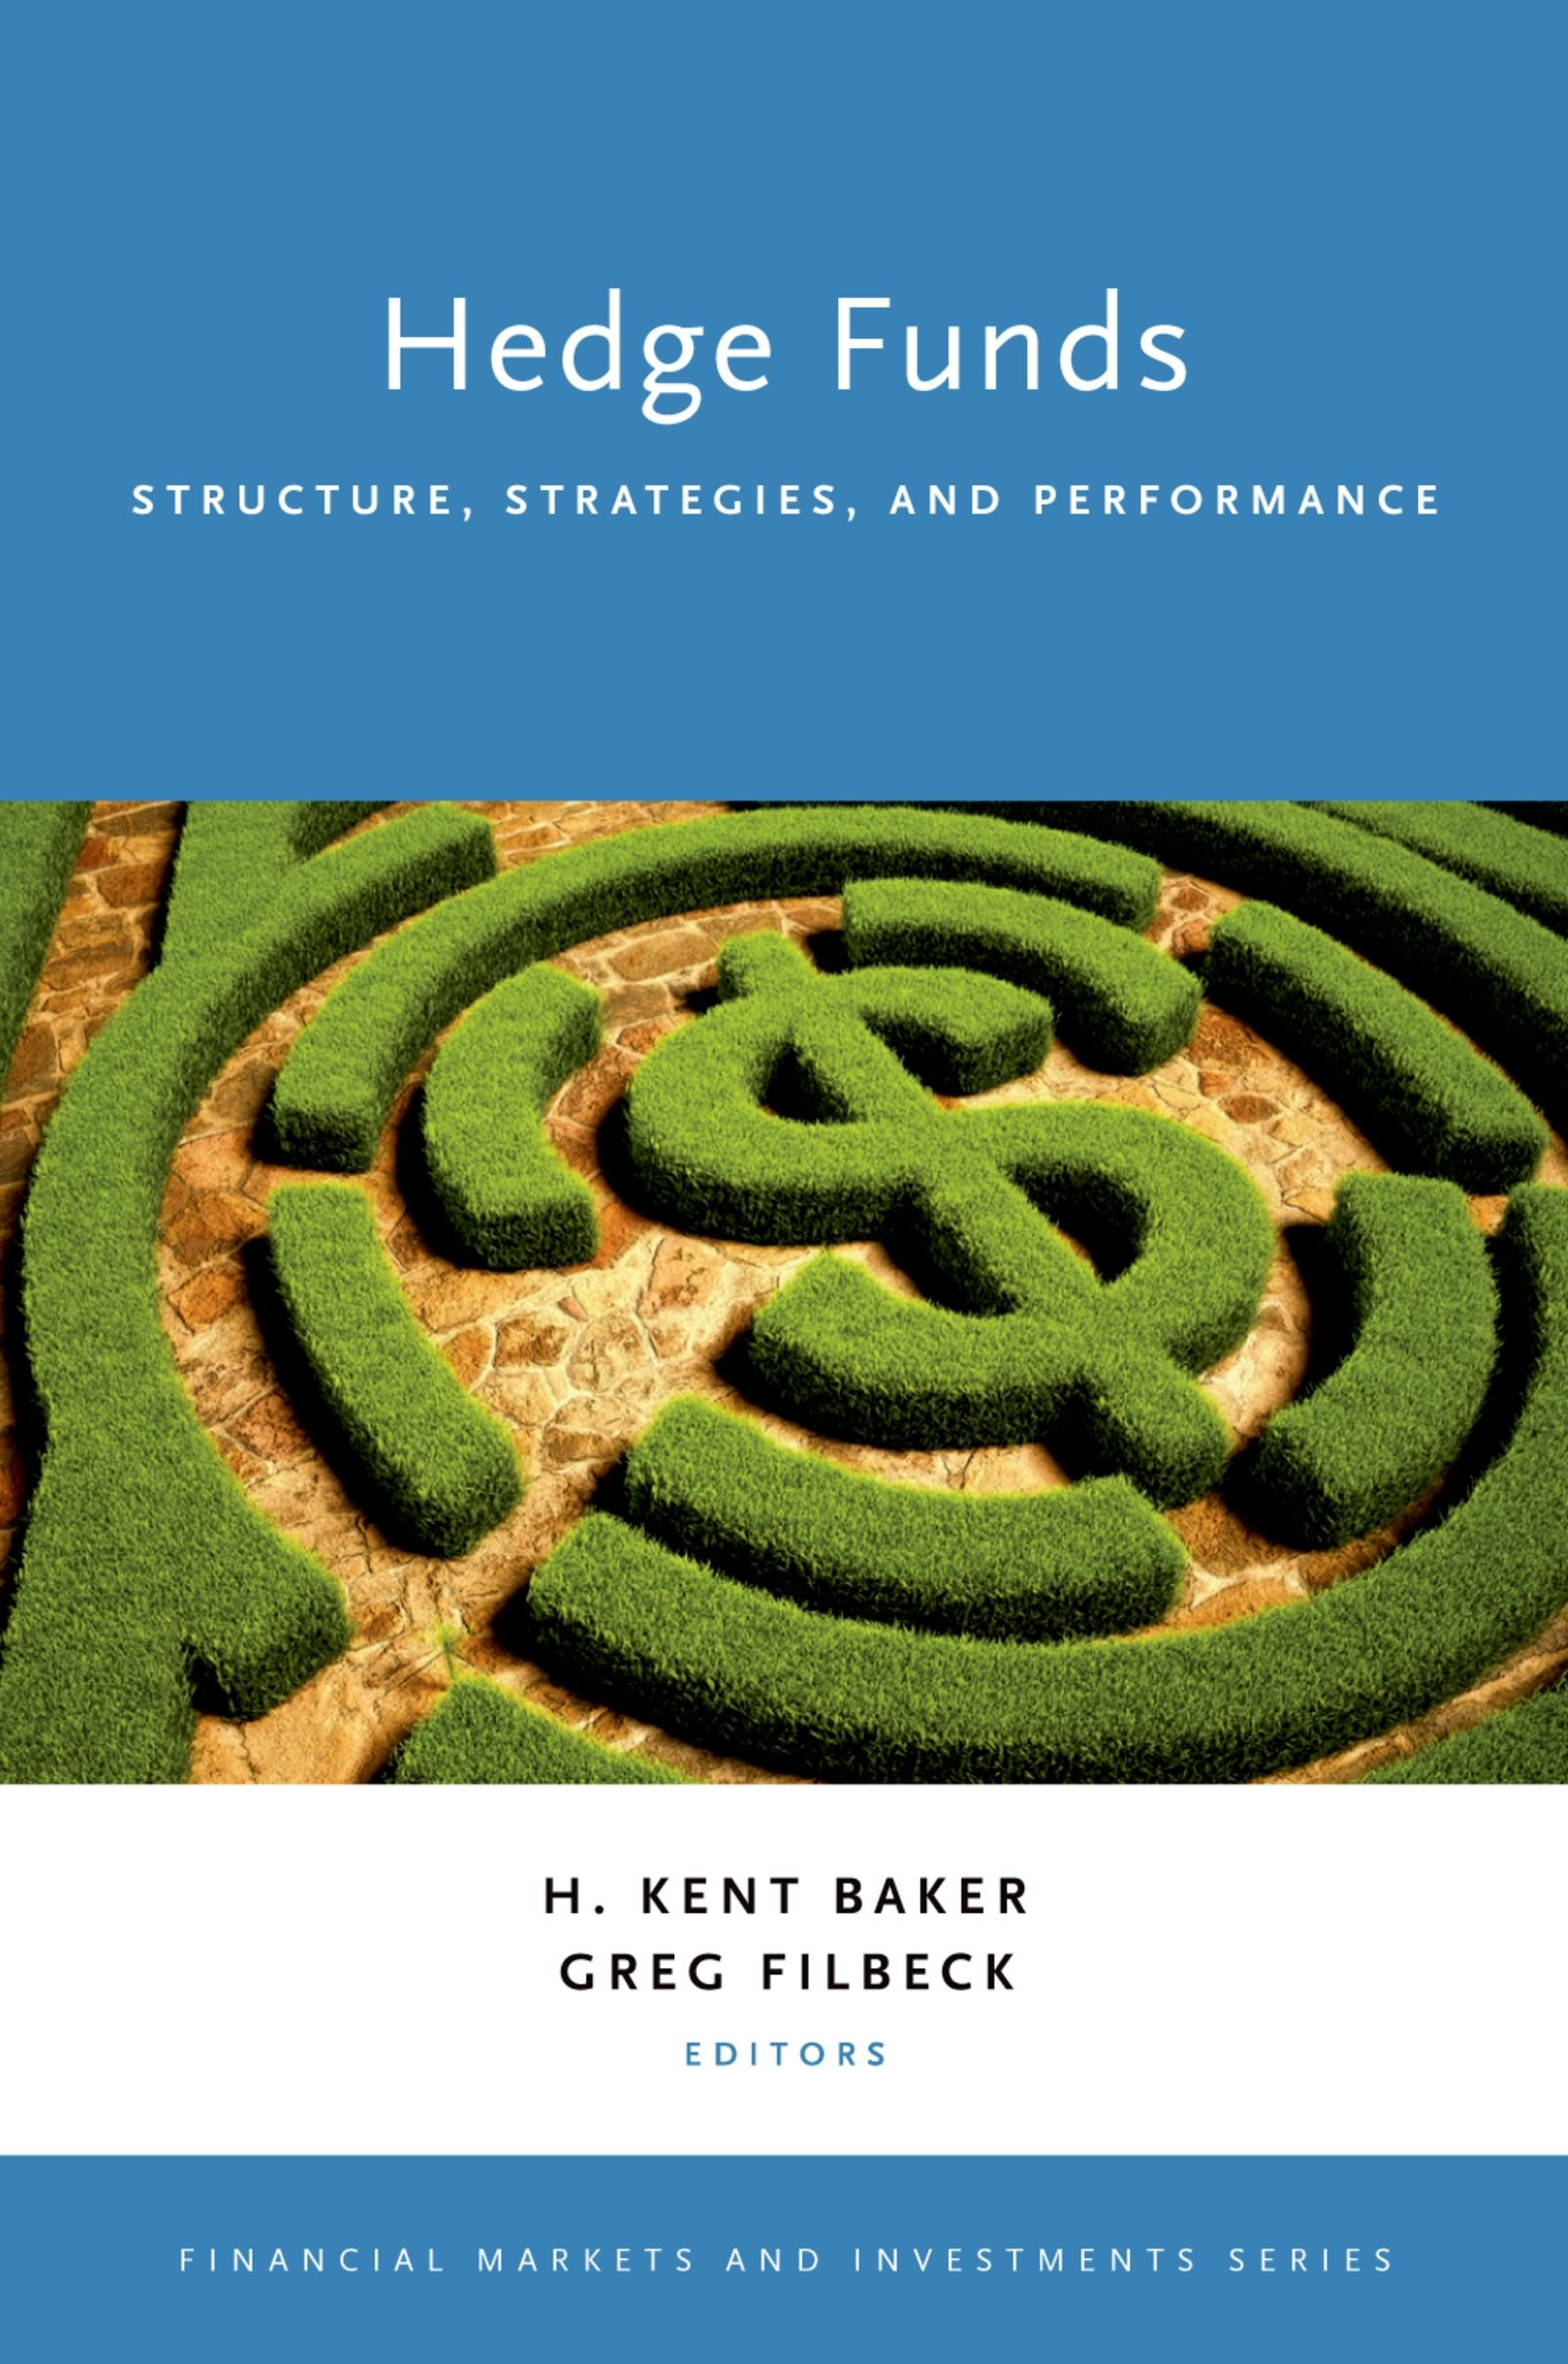 Hedge Funds: Structure, Strategies, and Performance (Financial Markets and Investments)